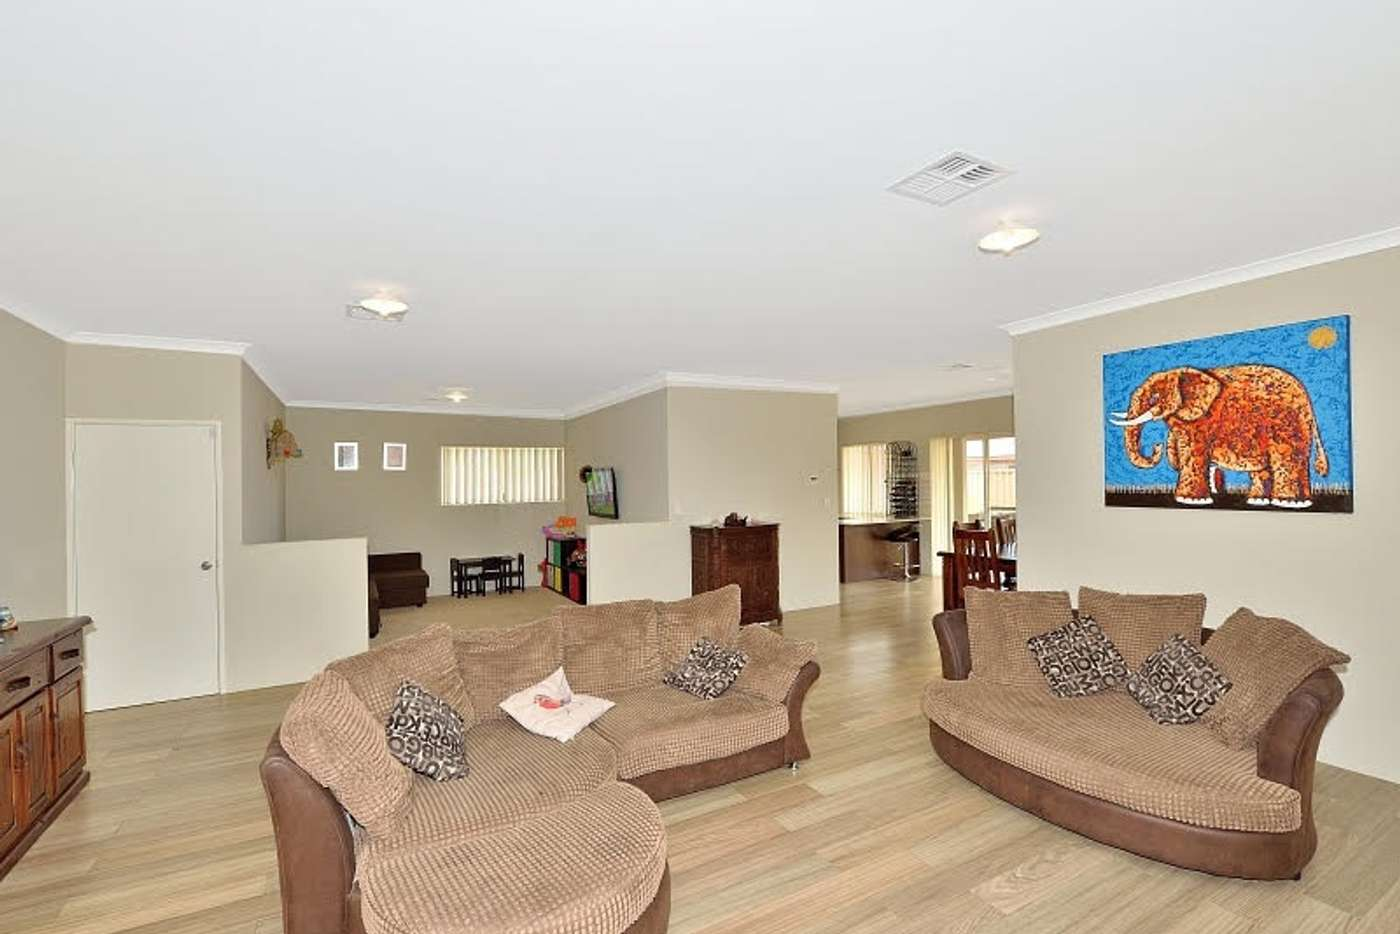 Sixth view of Homely house listing, 30 Gowan Way, Ravenswood WA 6208